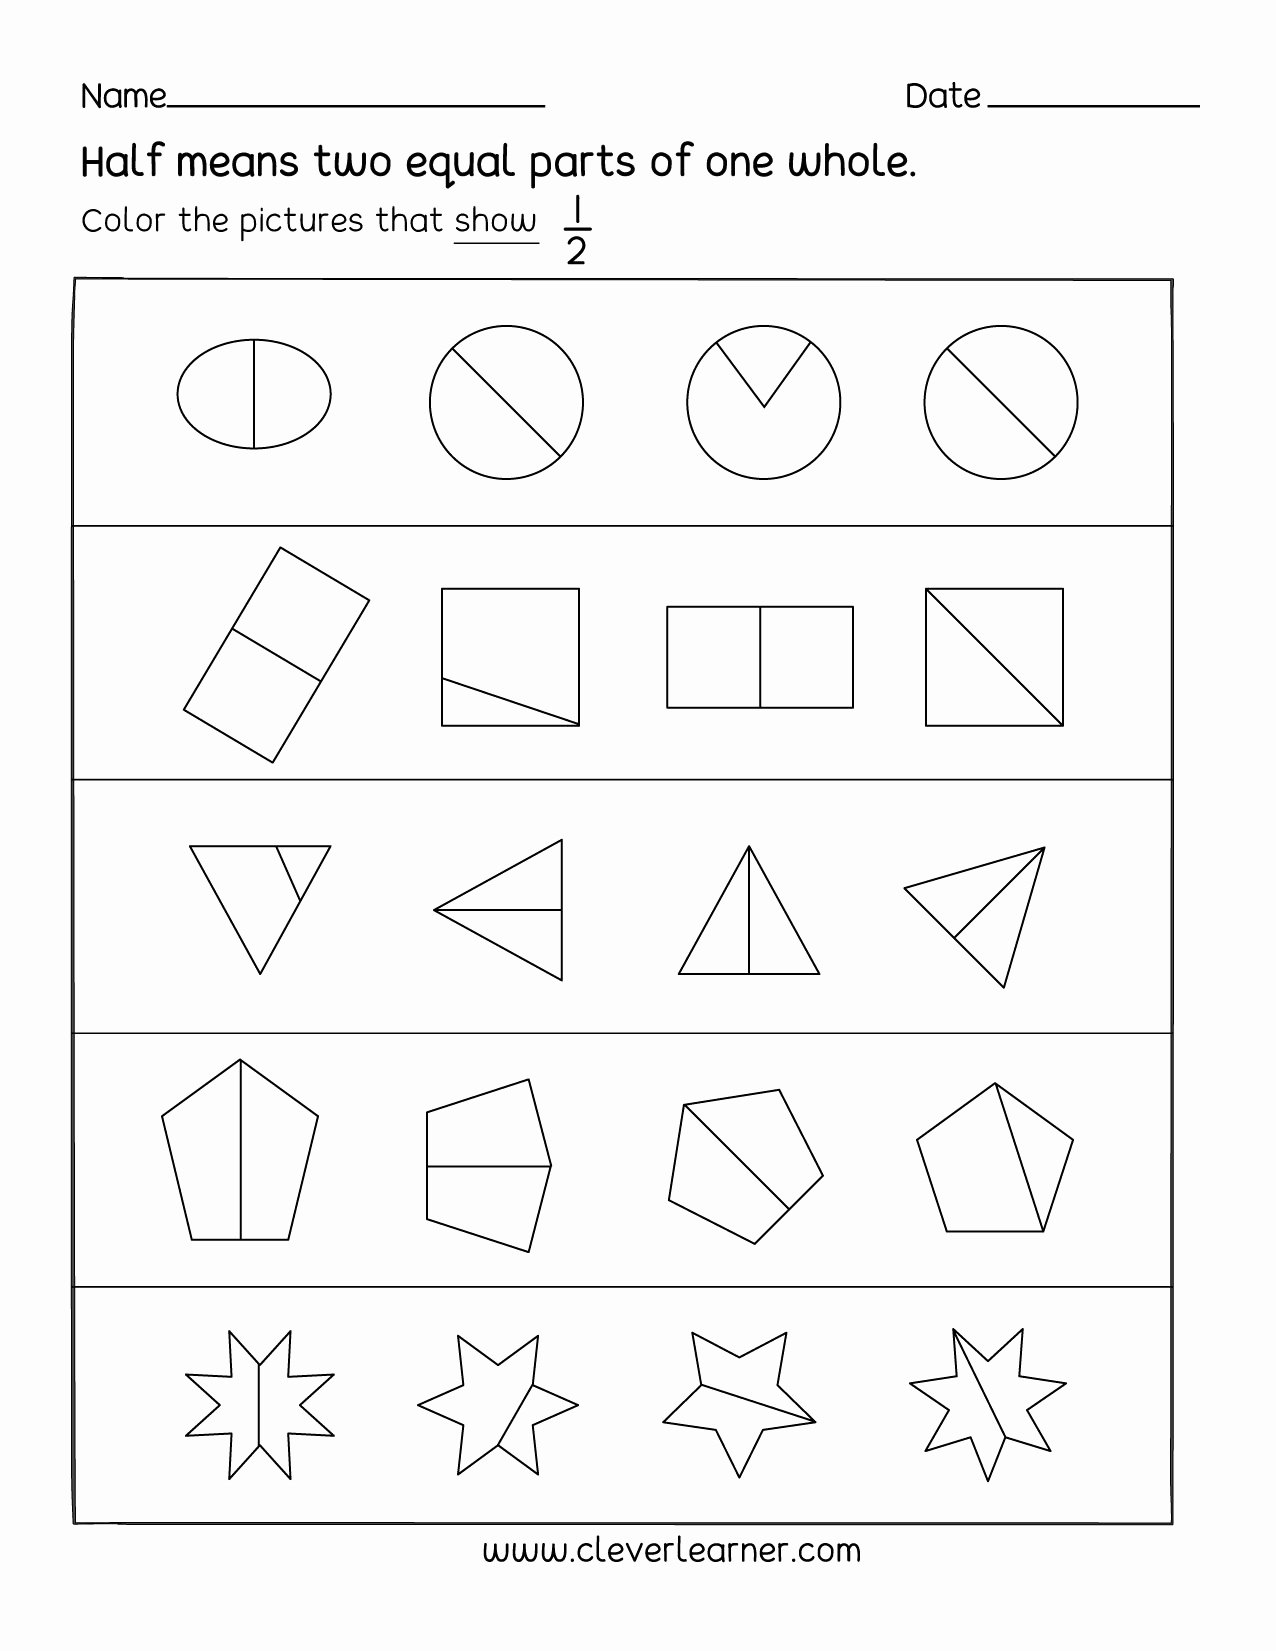 Fraction Worksheets for Preschoolers Ideas Fun Activity On Fractions Half 1 2 Worksheets for Children